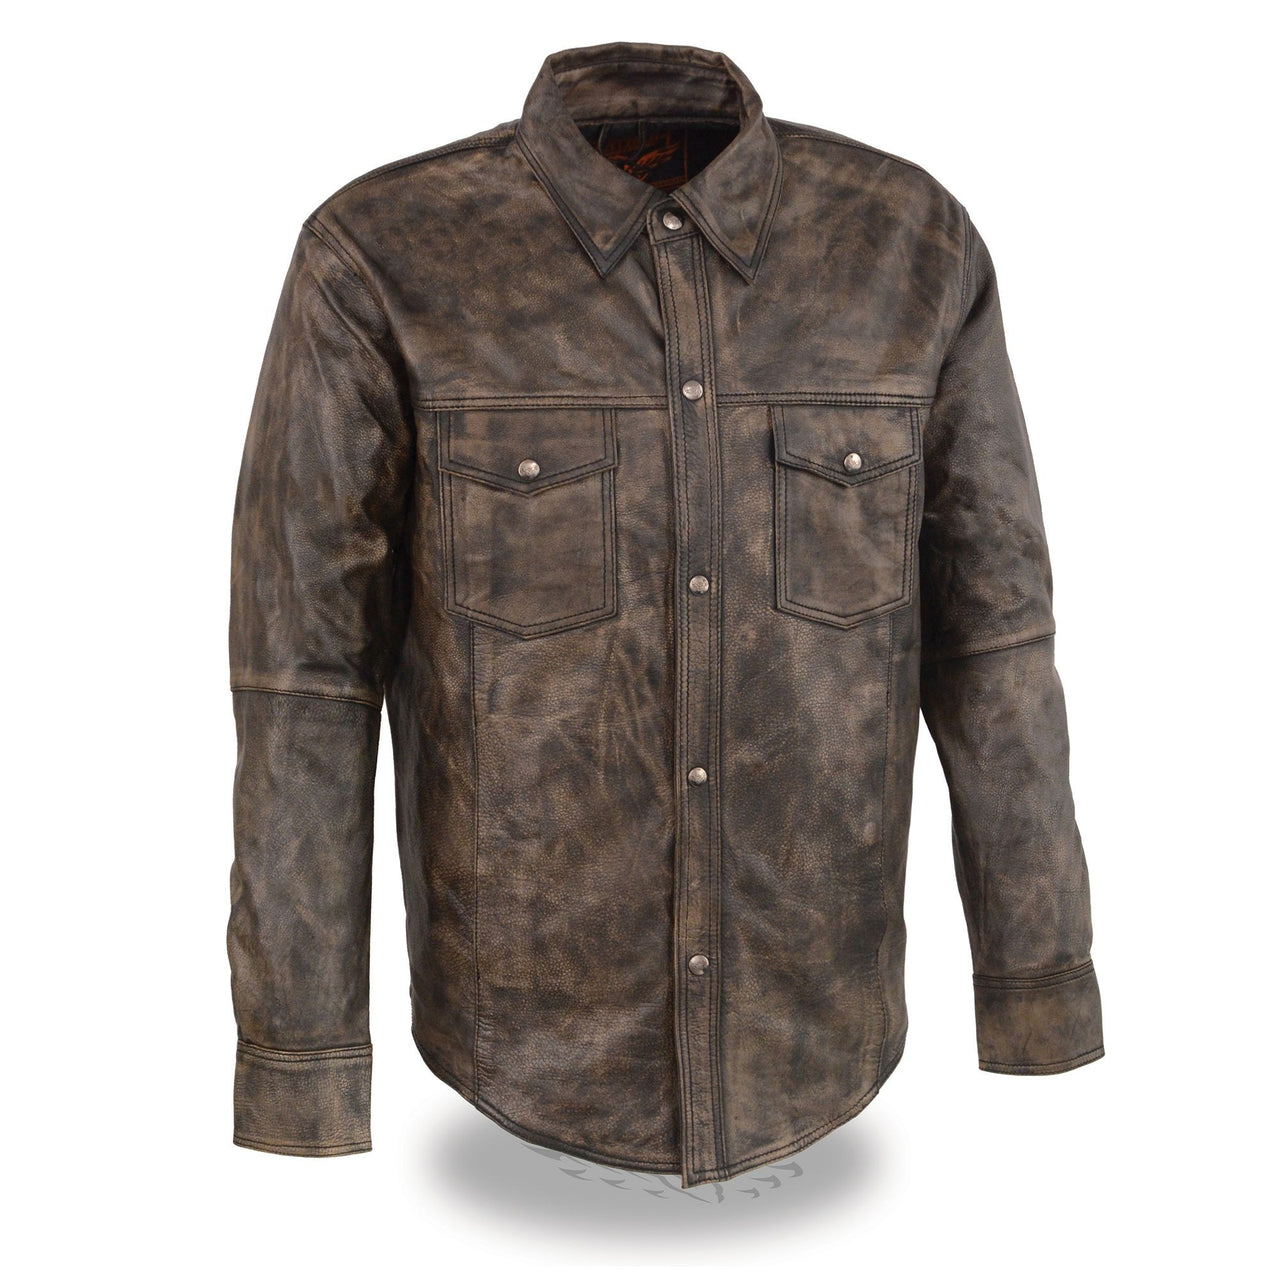 Men's Distressed Brown Lightweight Leather Snap Front Shirt - HighwayLeather